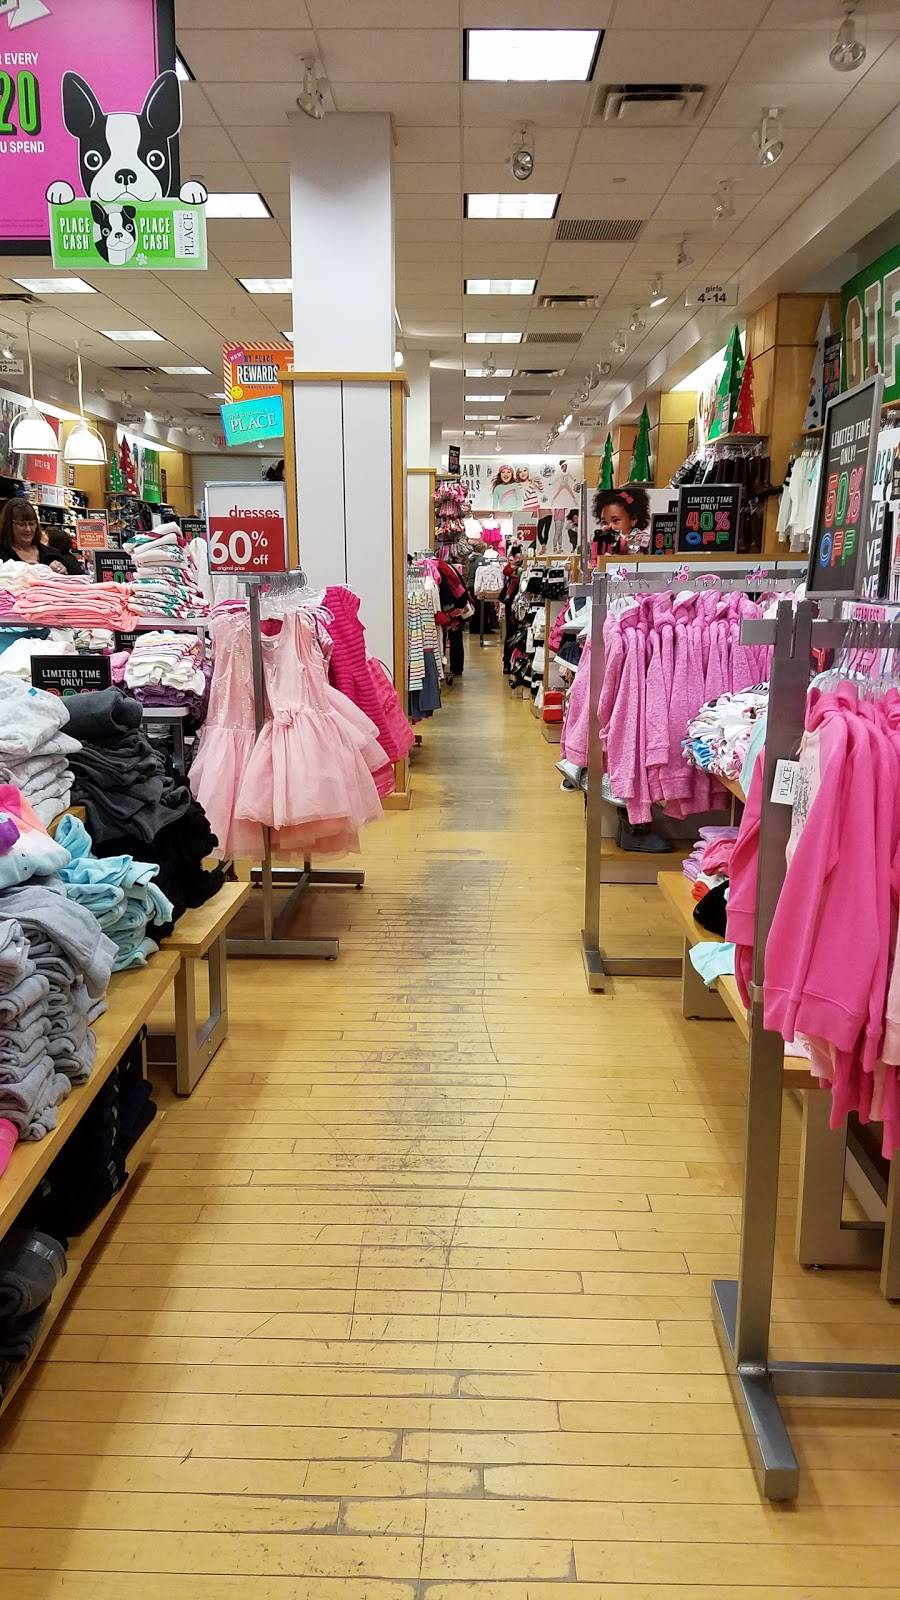 Valley River Center | shopping mall | 293 Valley River Center, Eugene, OR 97401, USA | 5416835513 OR +1 541-683-5513